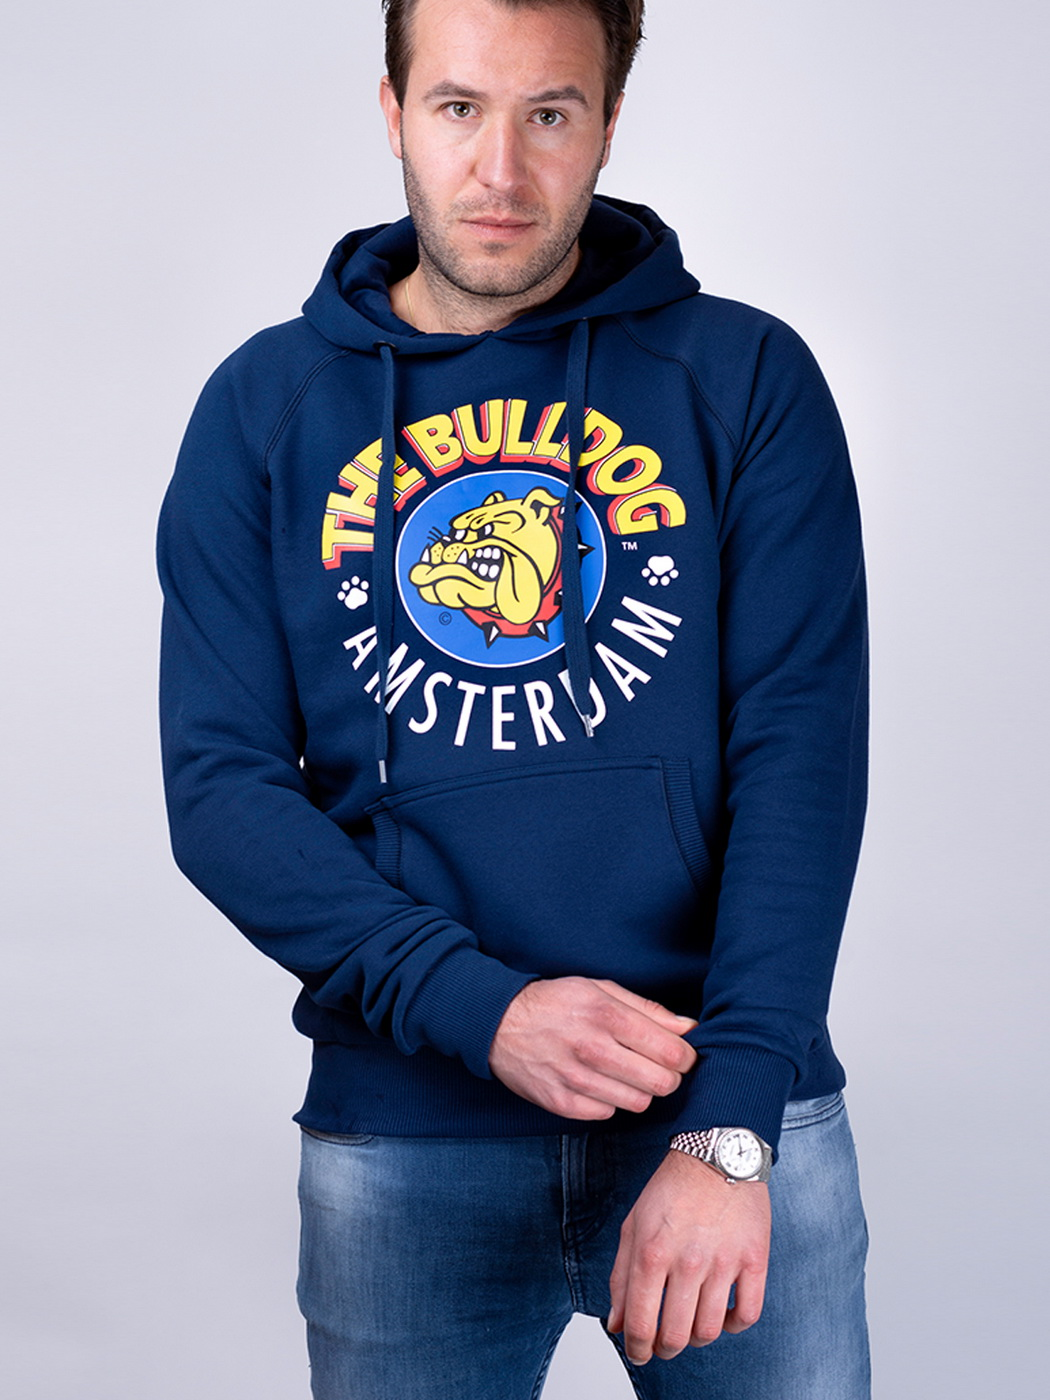 this is a hoodie